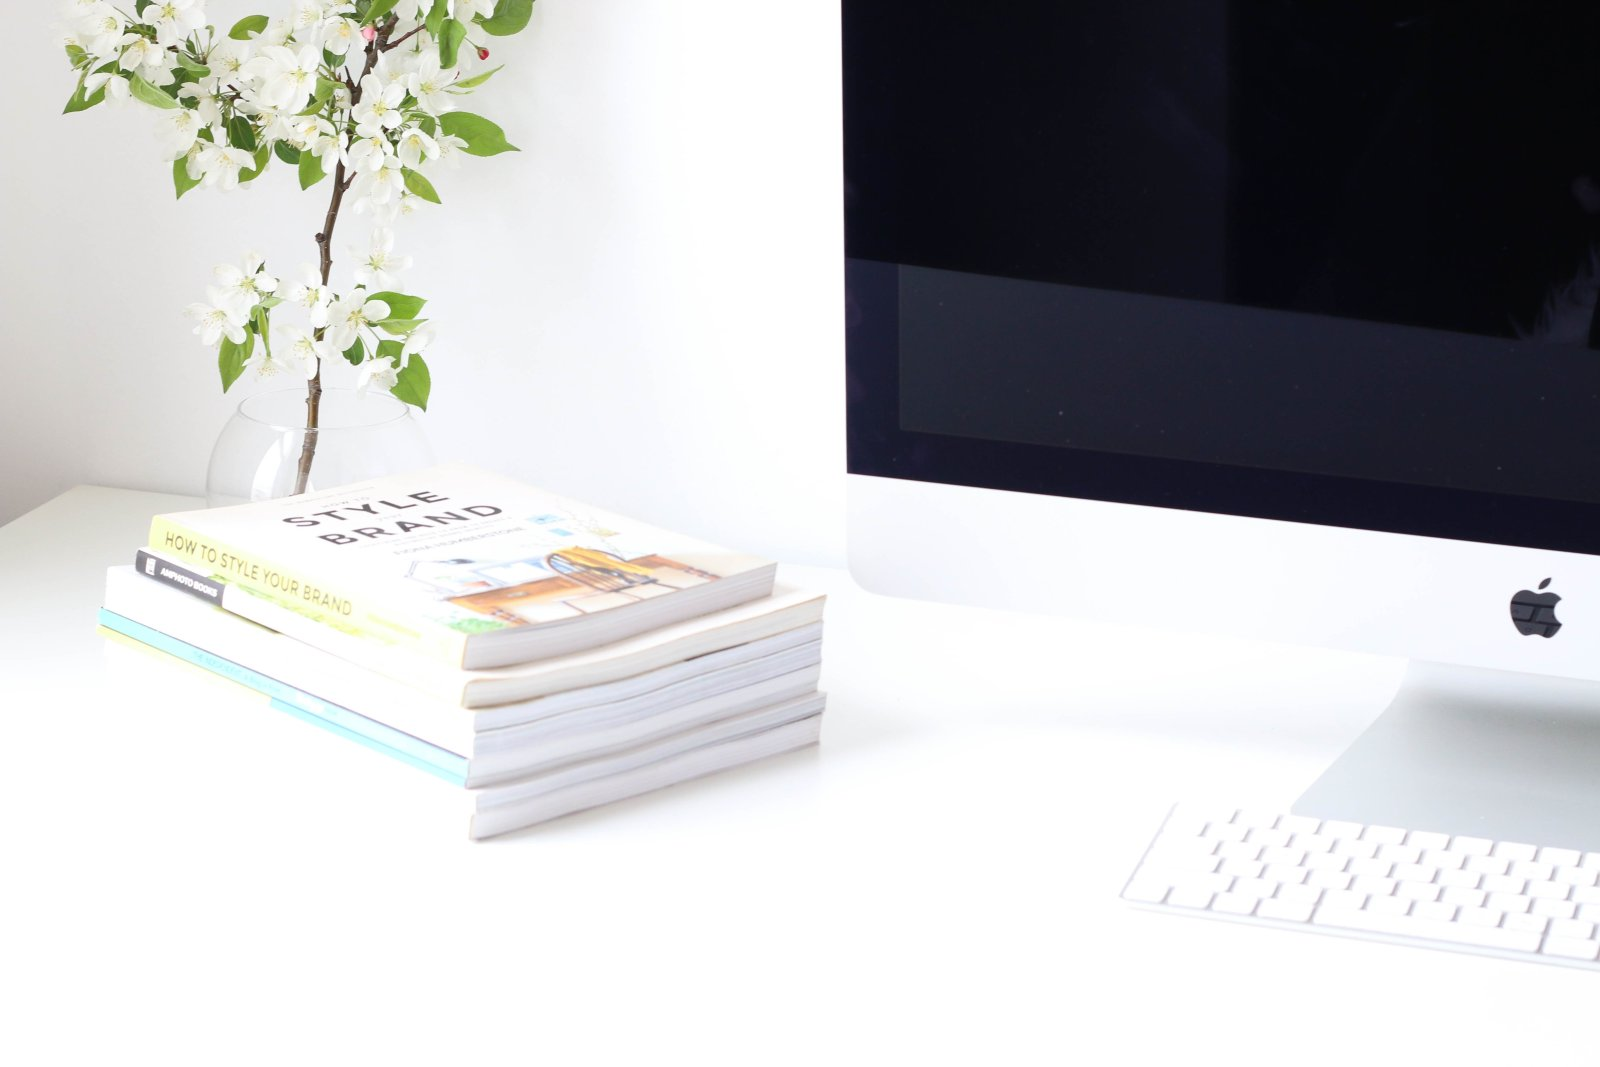 4 THINGS YOU NEED TO START A BLOG OR WEBSITE j kelly brito 247570 unsplash